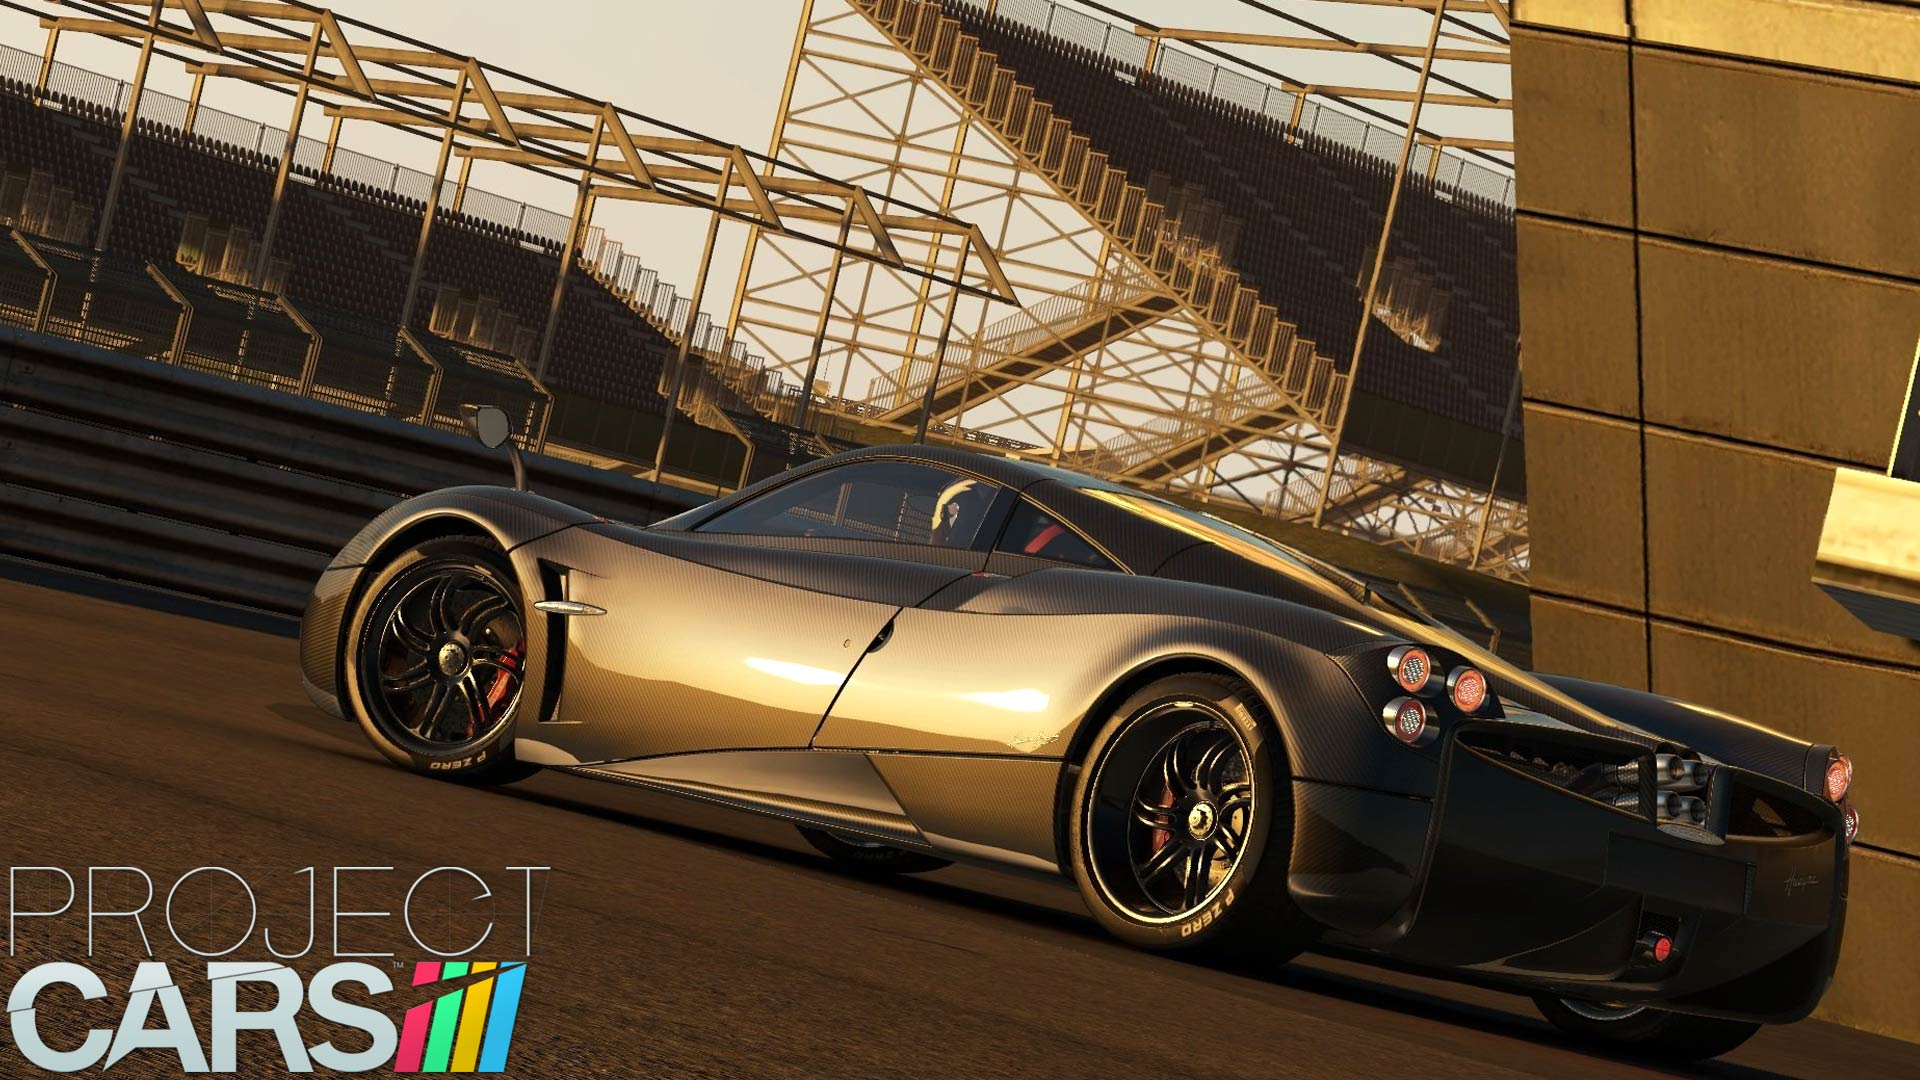 Nfs Most Wanted 2 Cars Wallpapers Project Cars Wallpapers Pictures Images